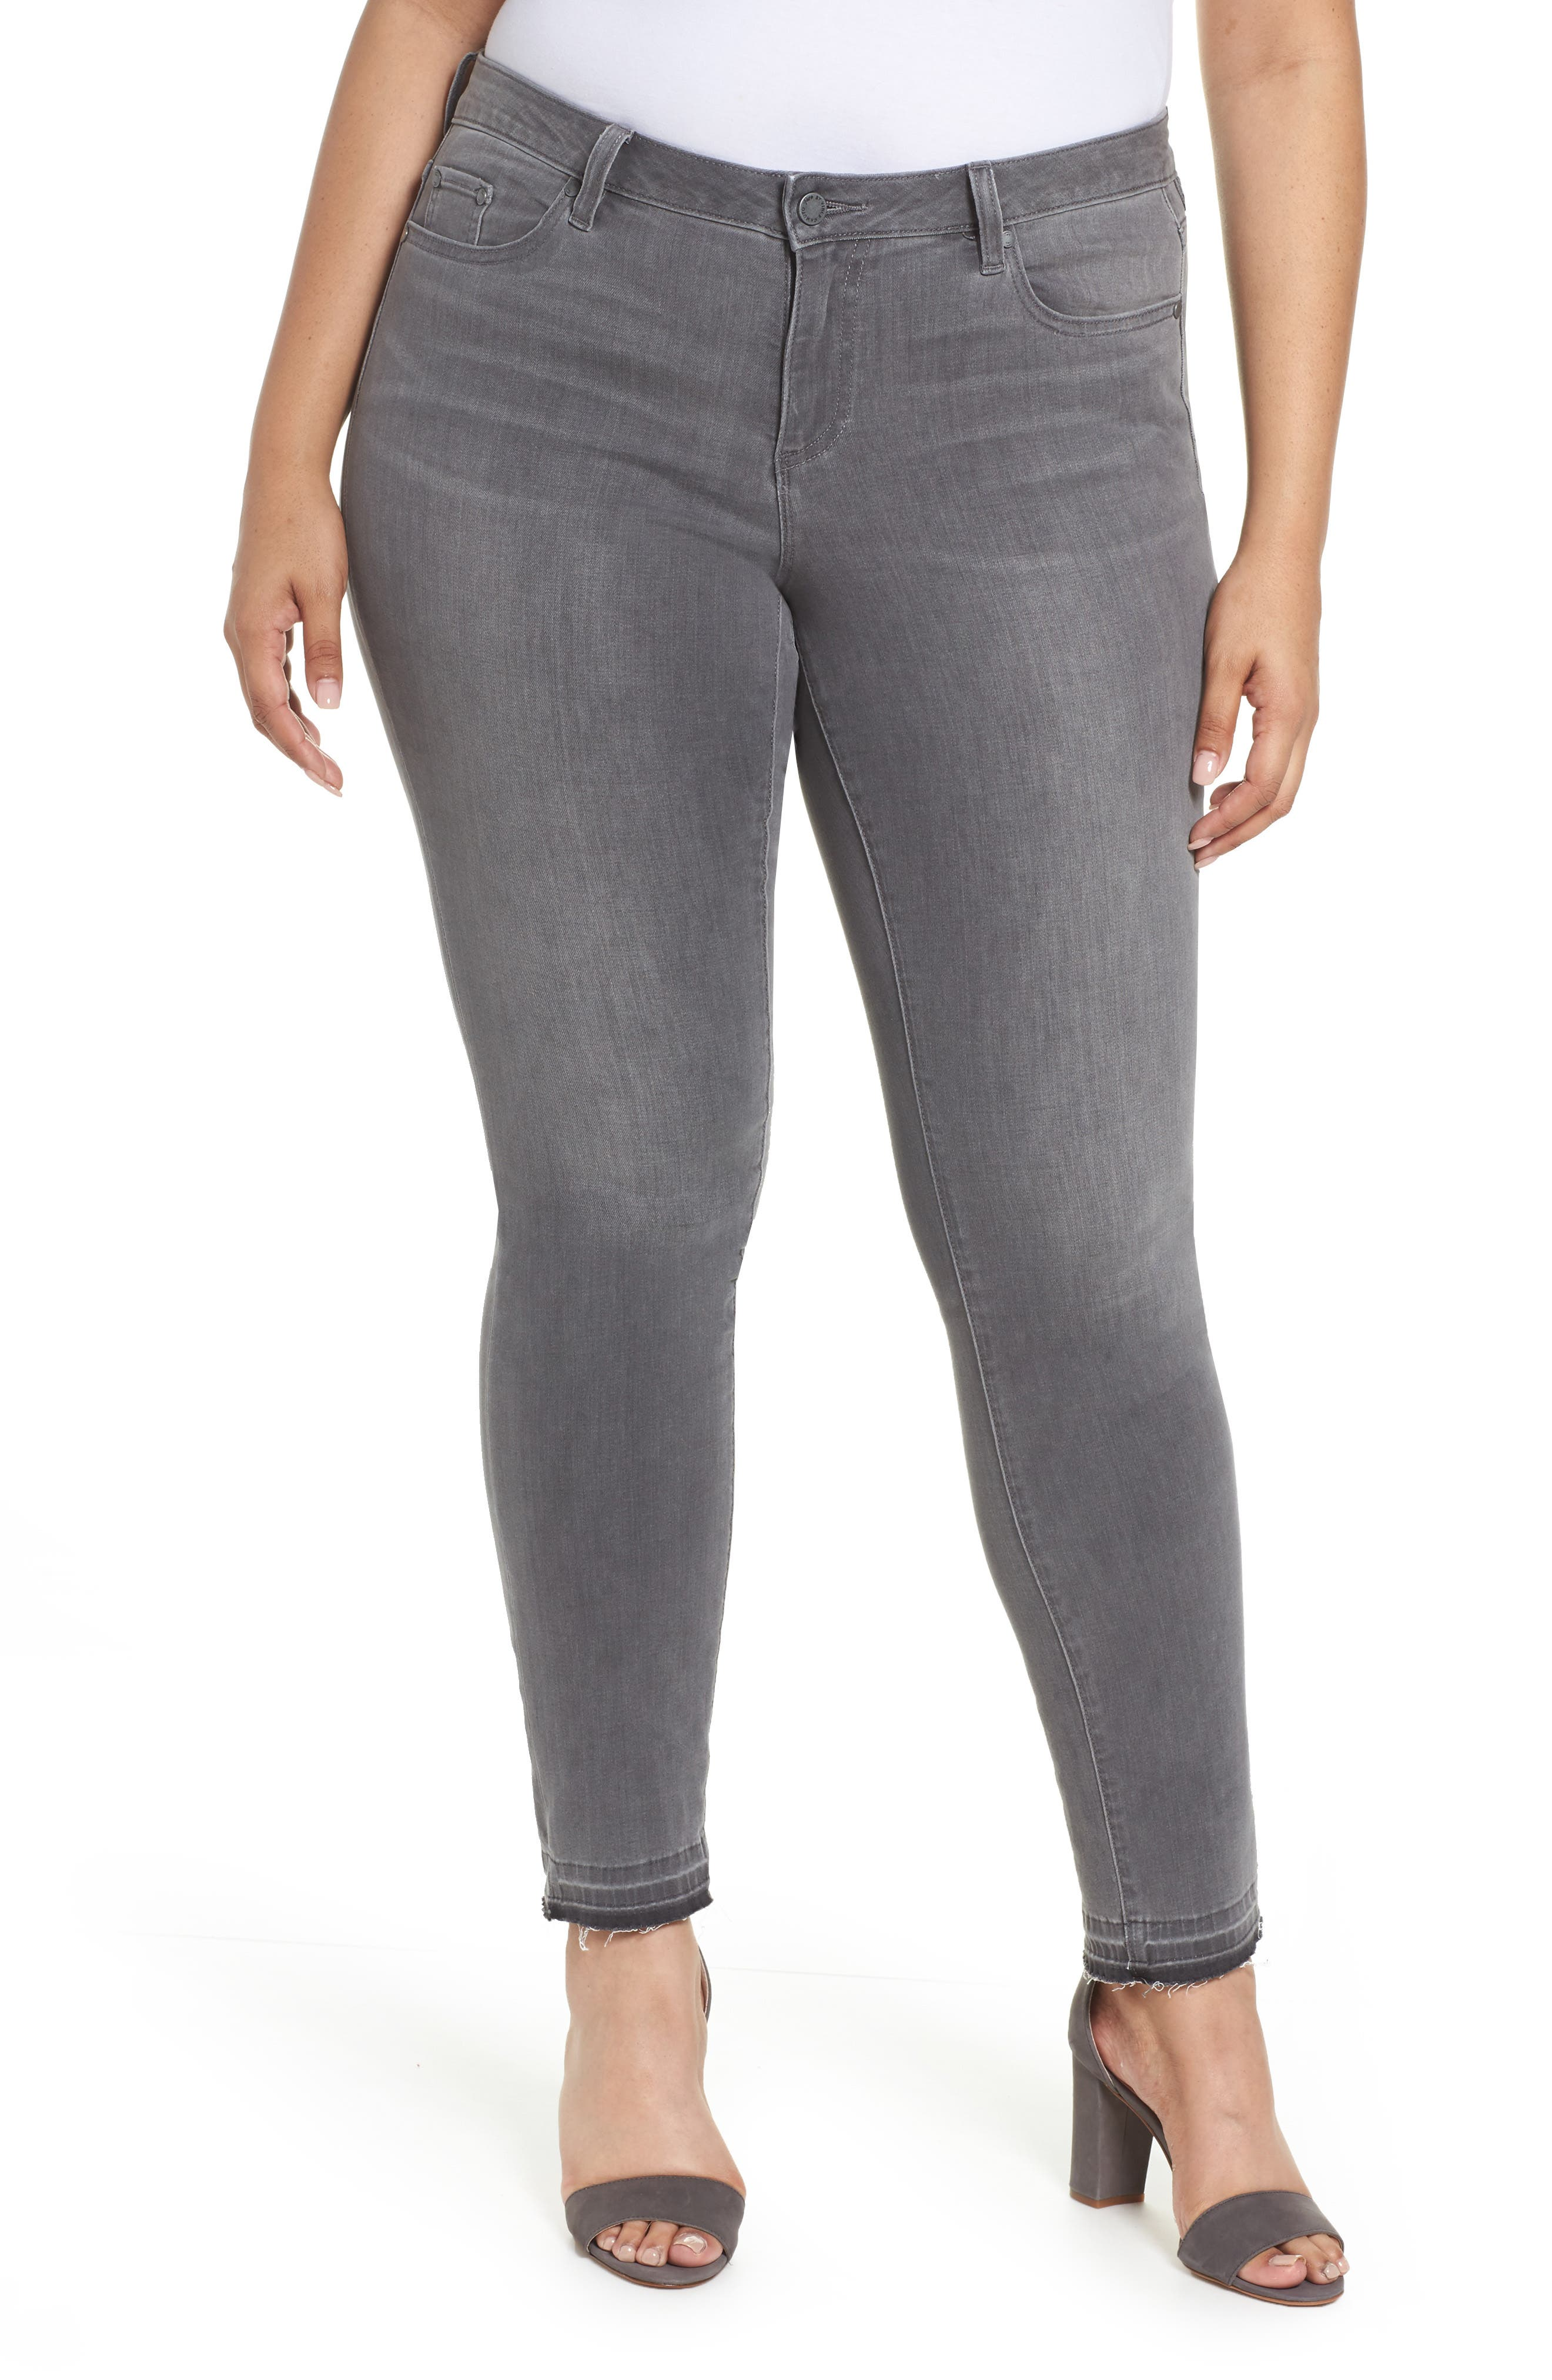 Main Image - Two by Vince Camuto Release Hem Skinny Jeans (Cobblestone) (Plus Size)